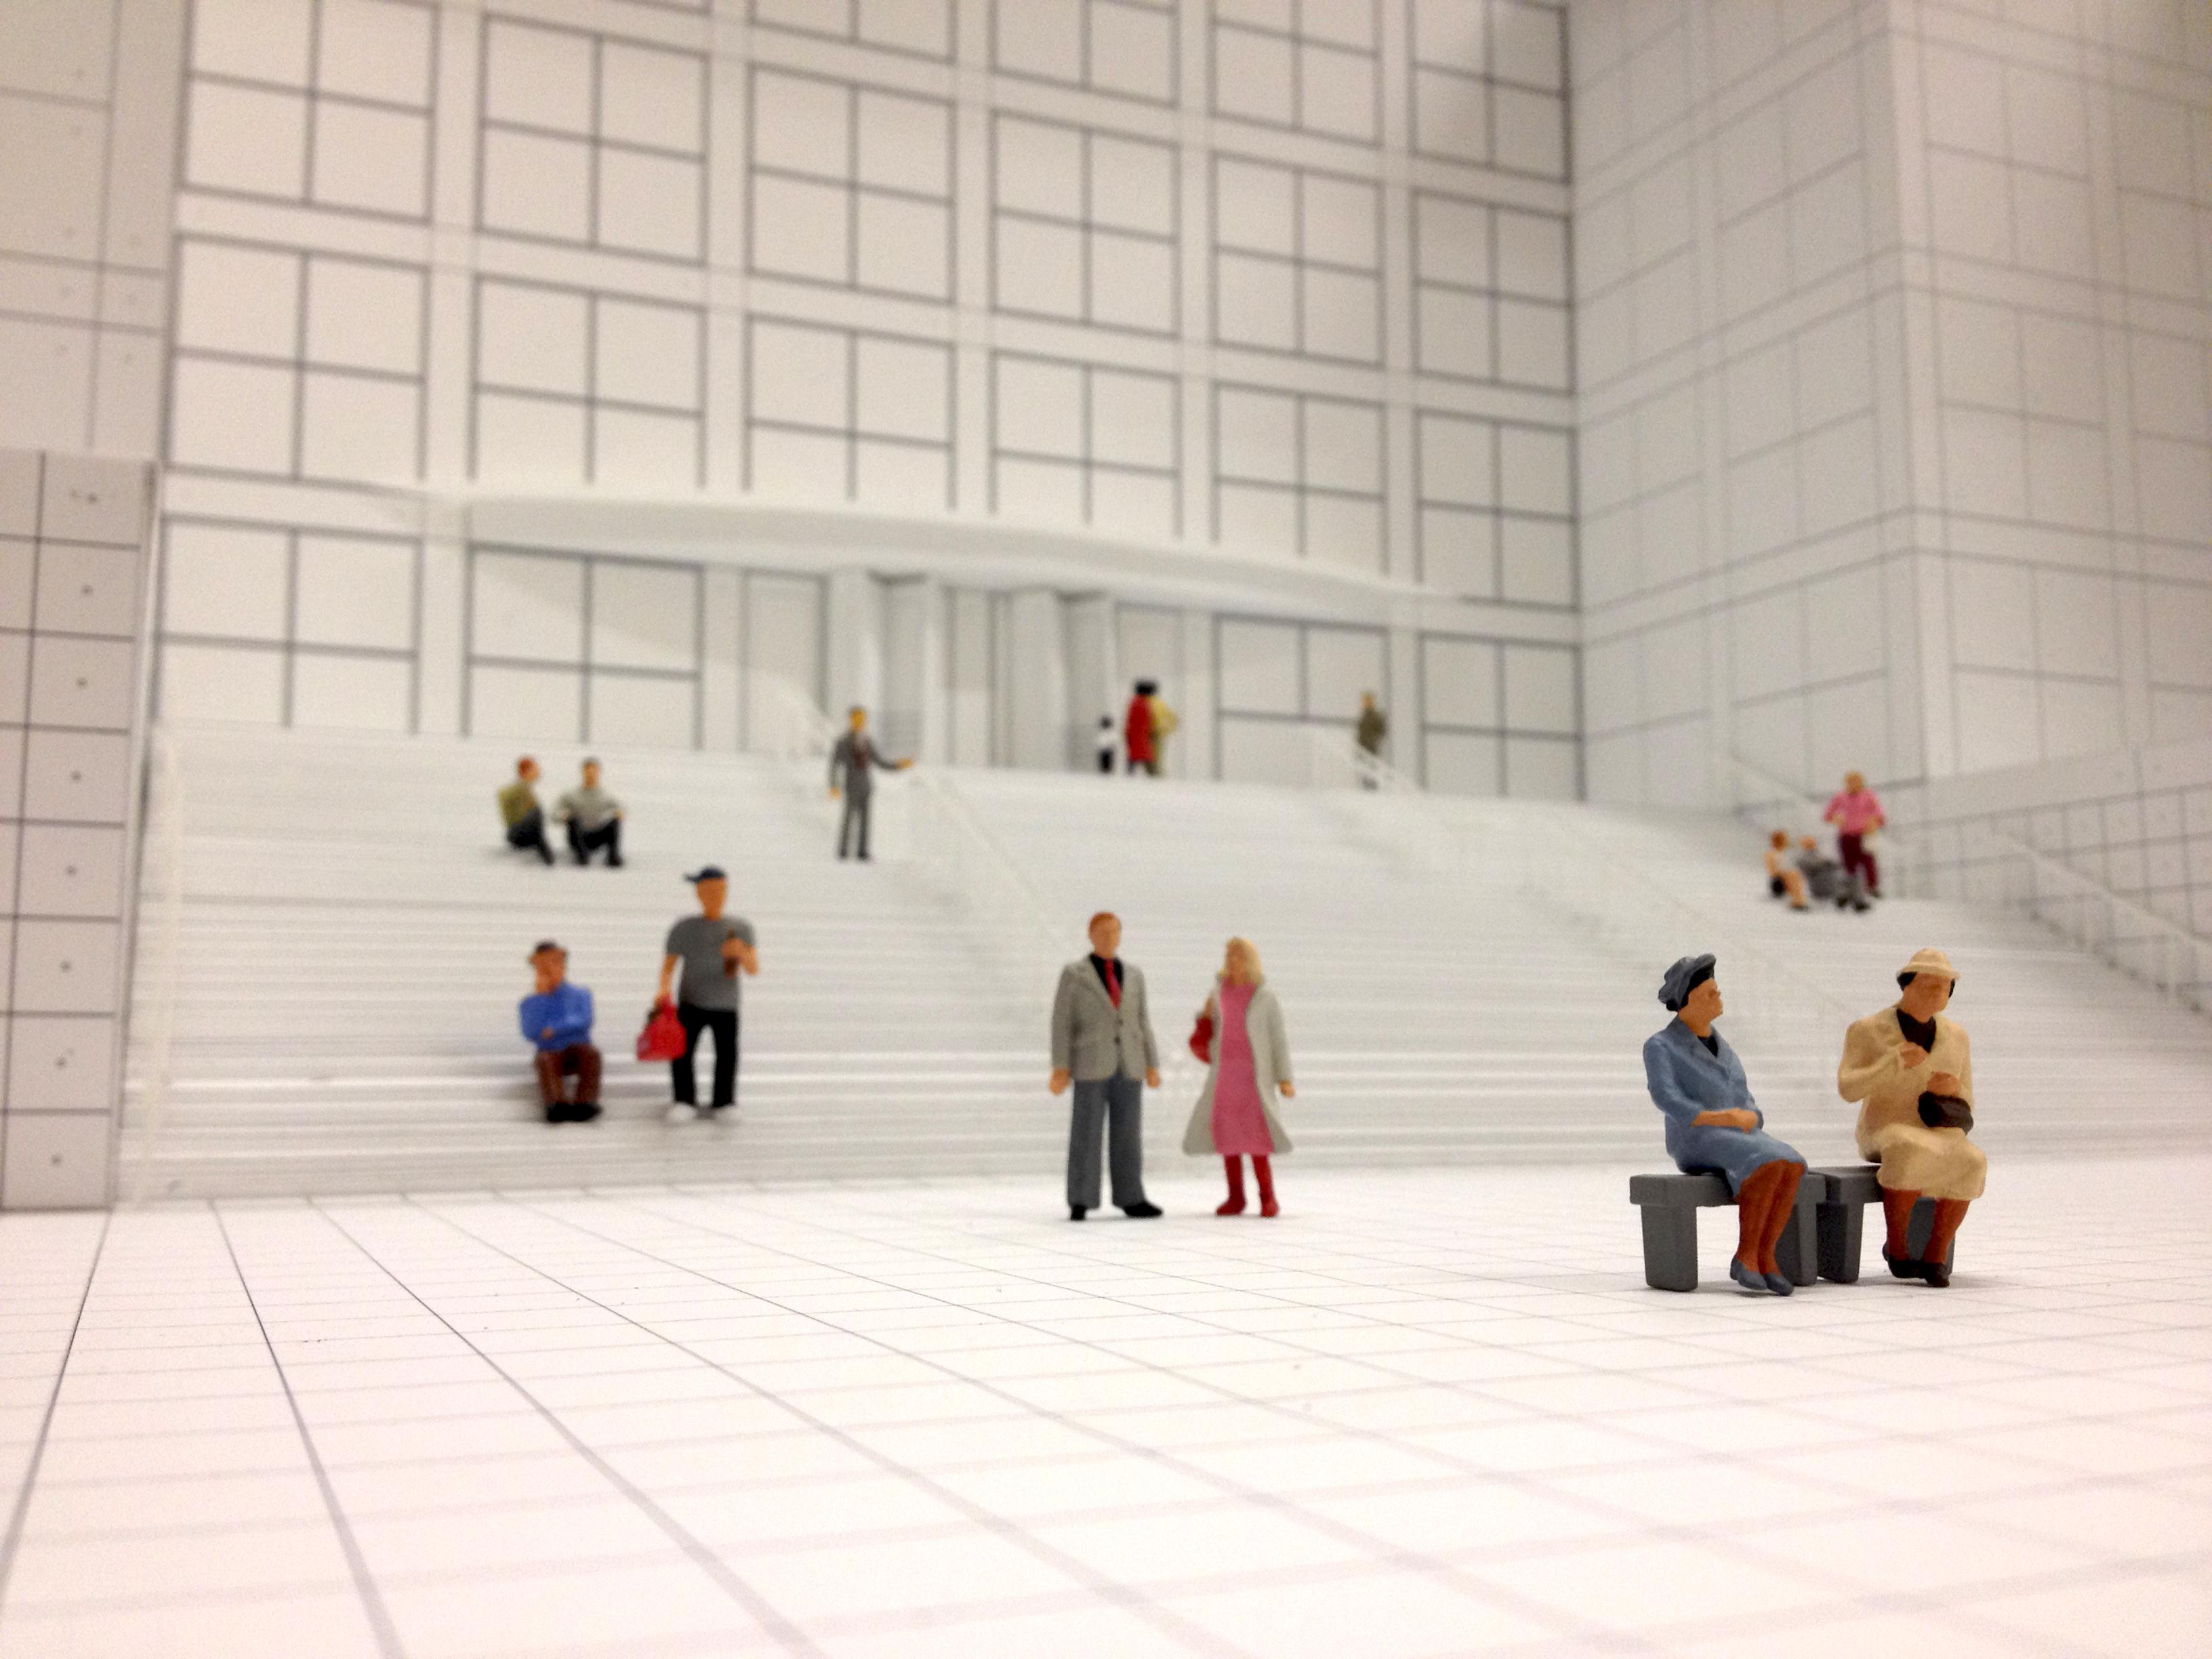 A black-and-white model of the MCA's front staircase and plaza with colorful figurines